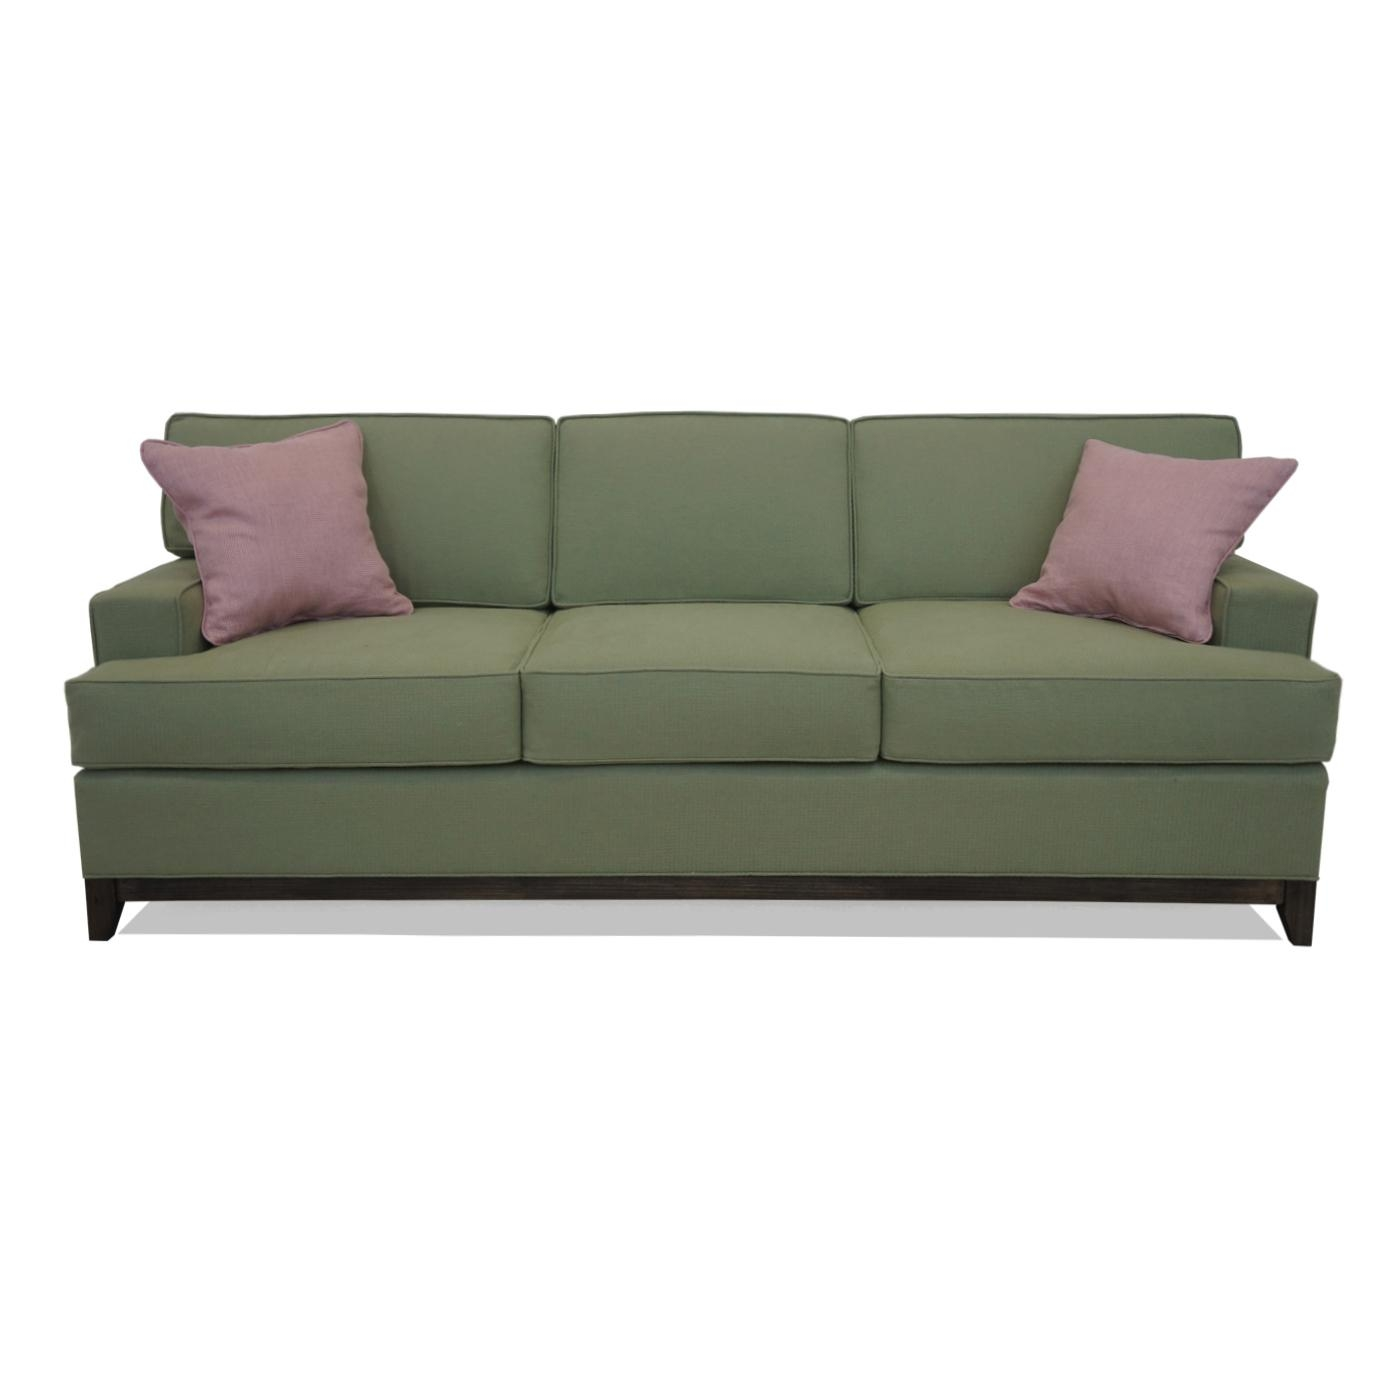 The Best Places To Shop For Eco Friendly Furniture Intended For Eco Friendly Sectional Sofa (Image 15 of 15)